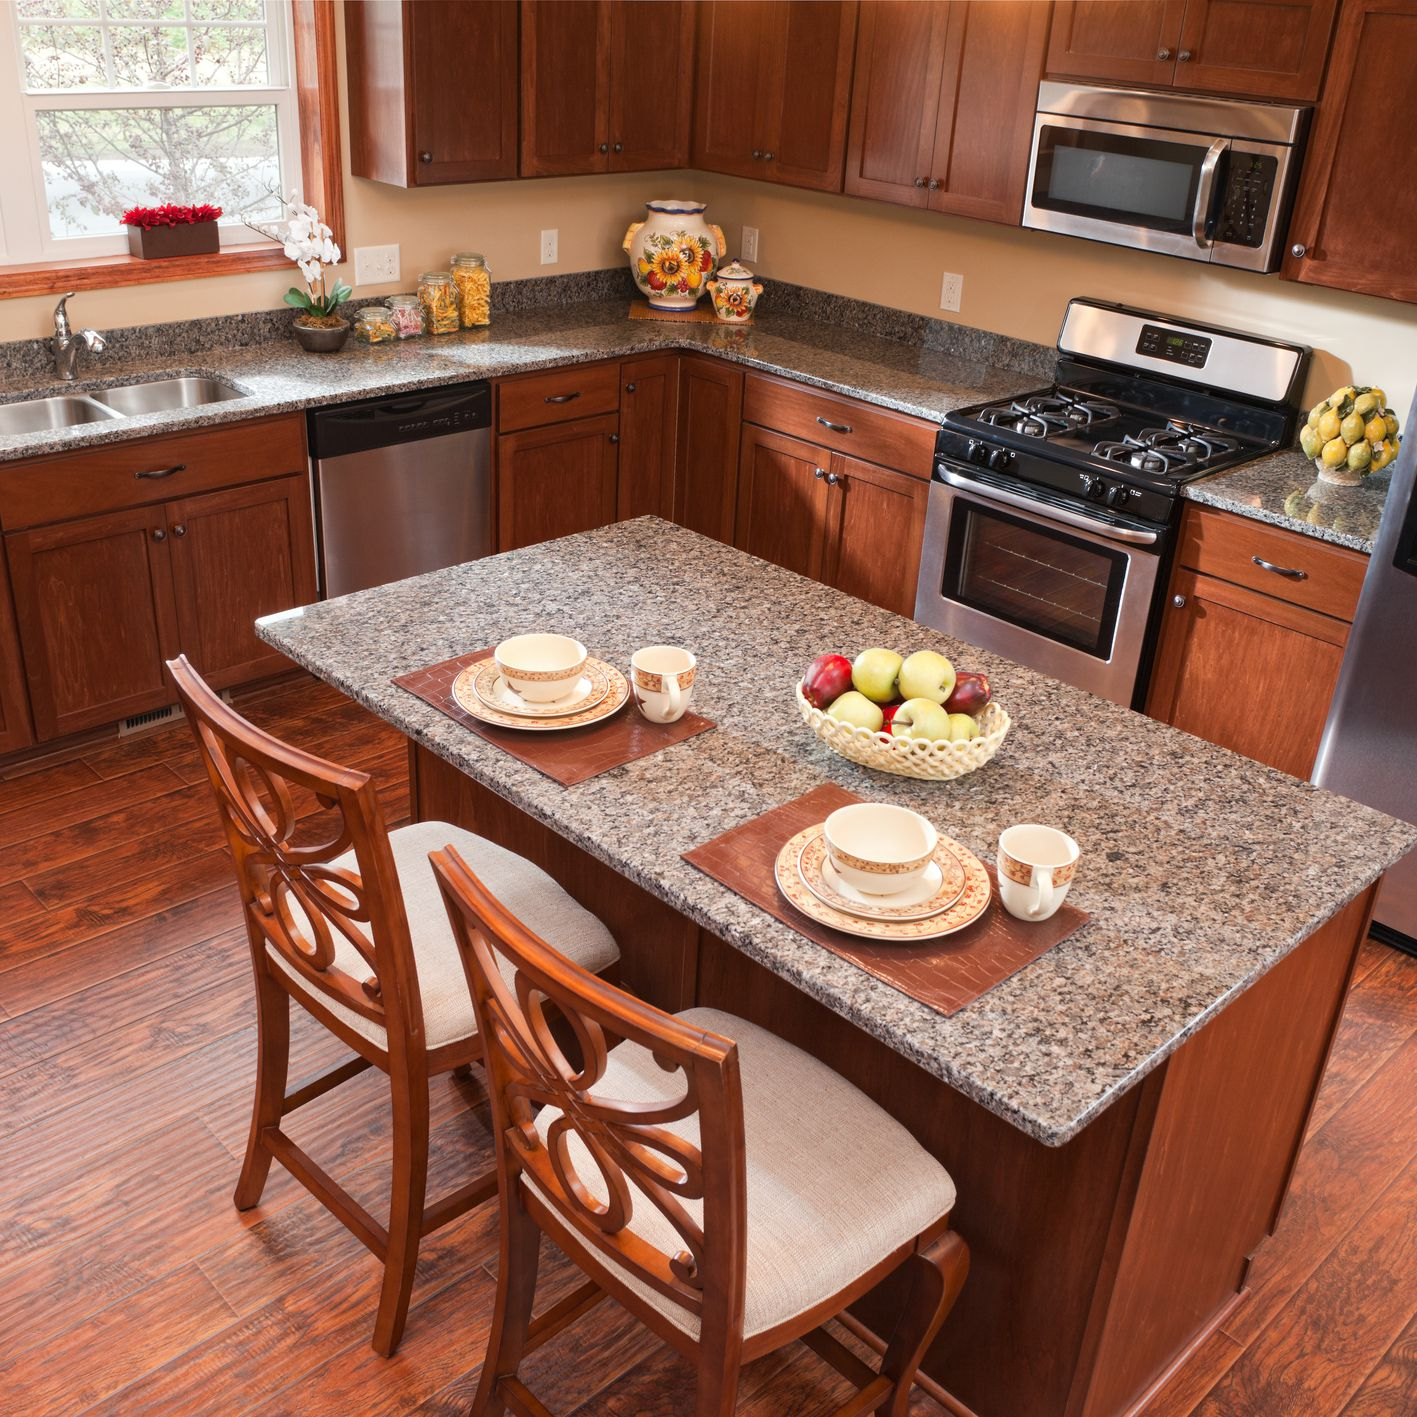 Can You Install Laminate Flooring In the Kitchen? Brown And White Clic Kitchen Ideas on brown and living room ideas, brown kitchen cabinets, brown and white area, oak and white kitchen ideas, brown cabinets with white appliances, black and white kitchen ideas,